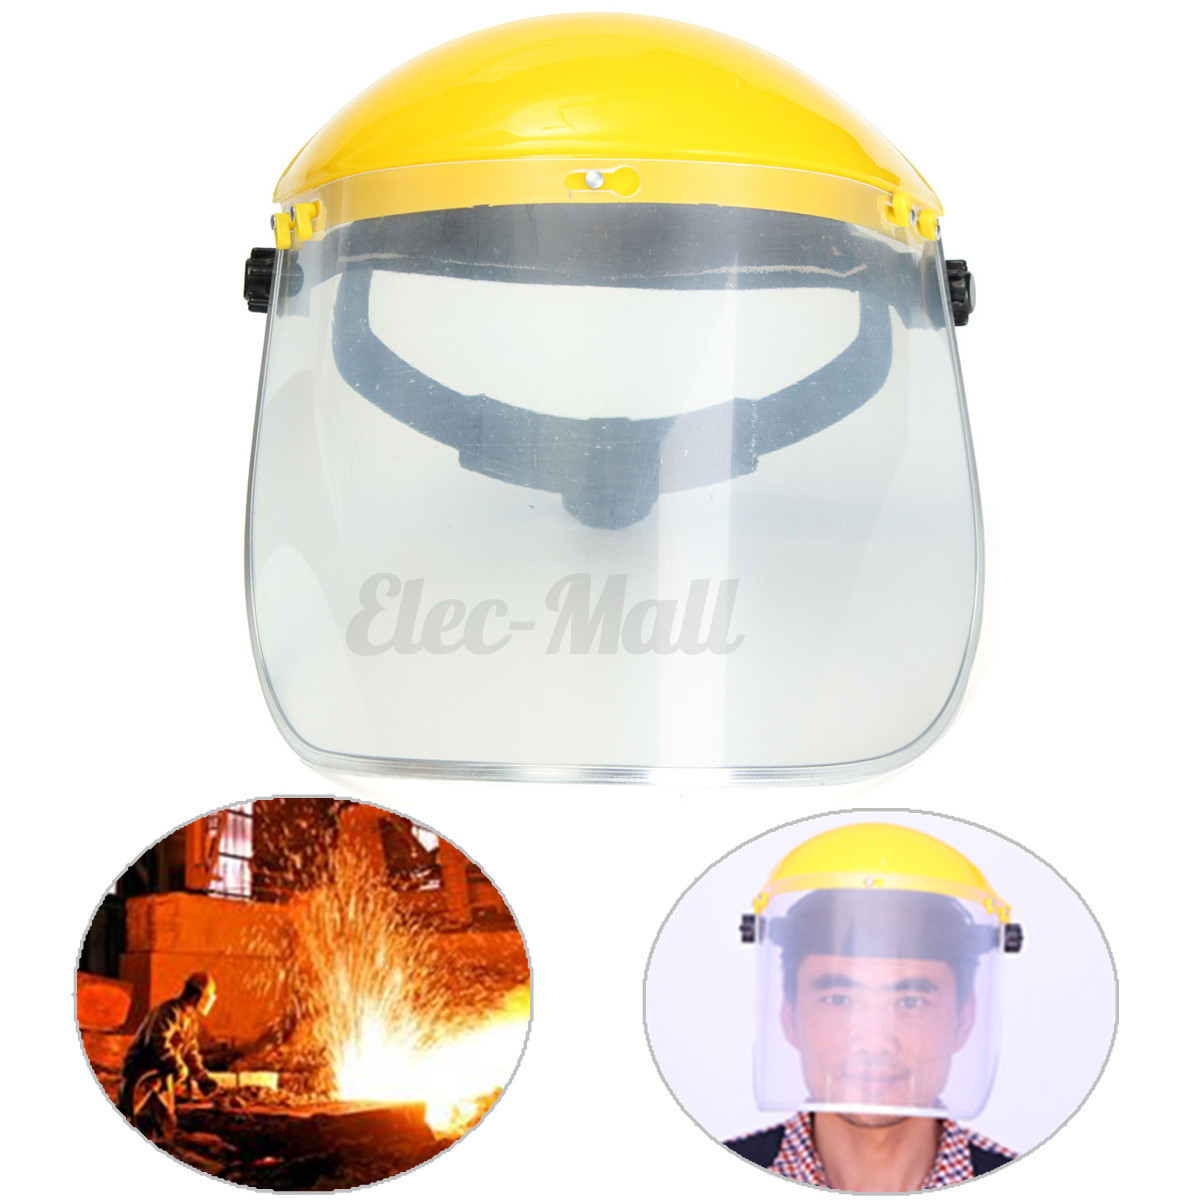 adjustable clear face mask shield visor safety workwear eye protection gardening ebay. Black Bedroom Furniture Sets. Home Design Ideas